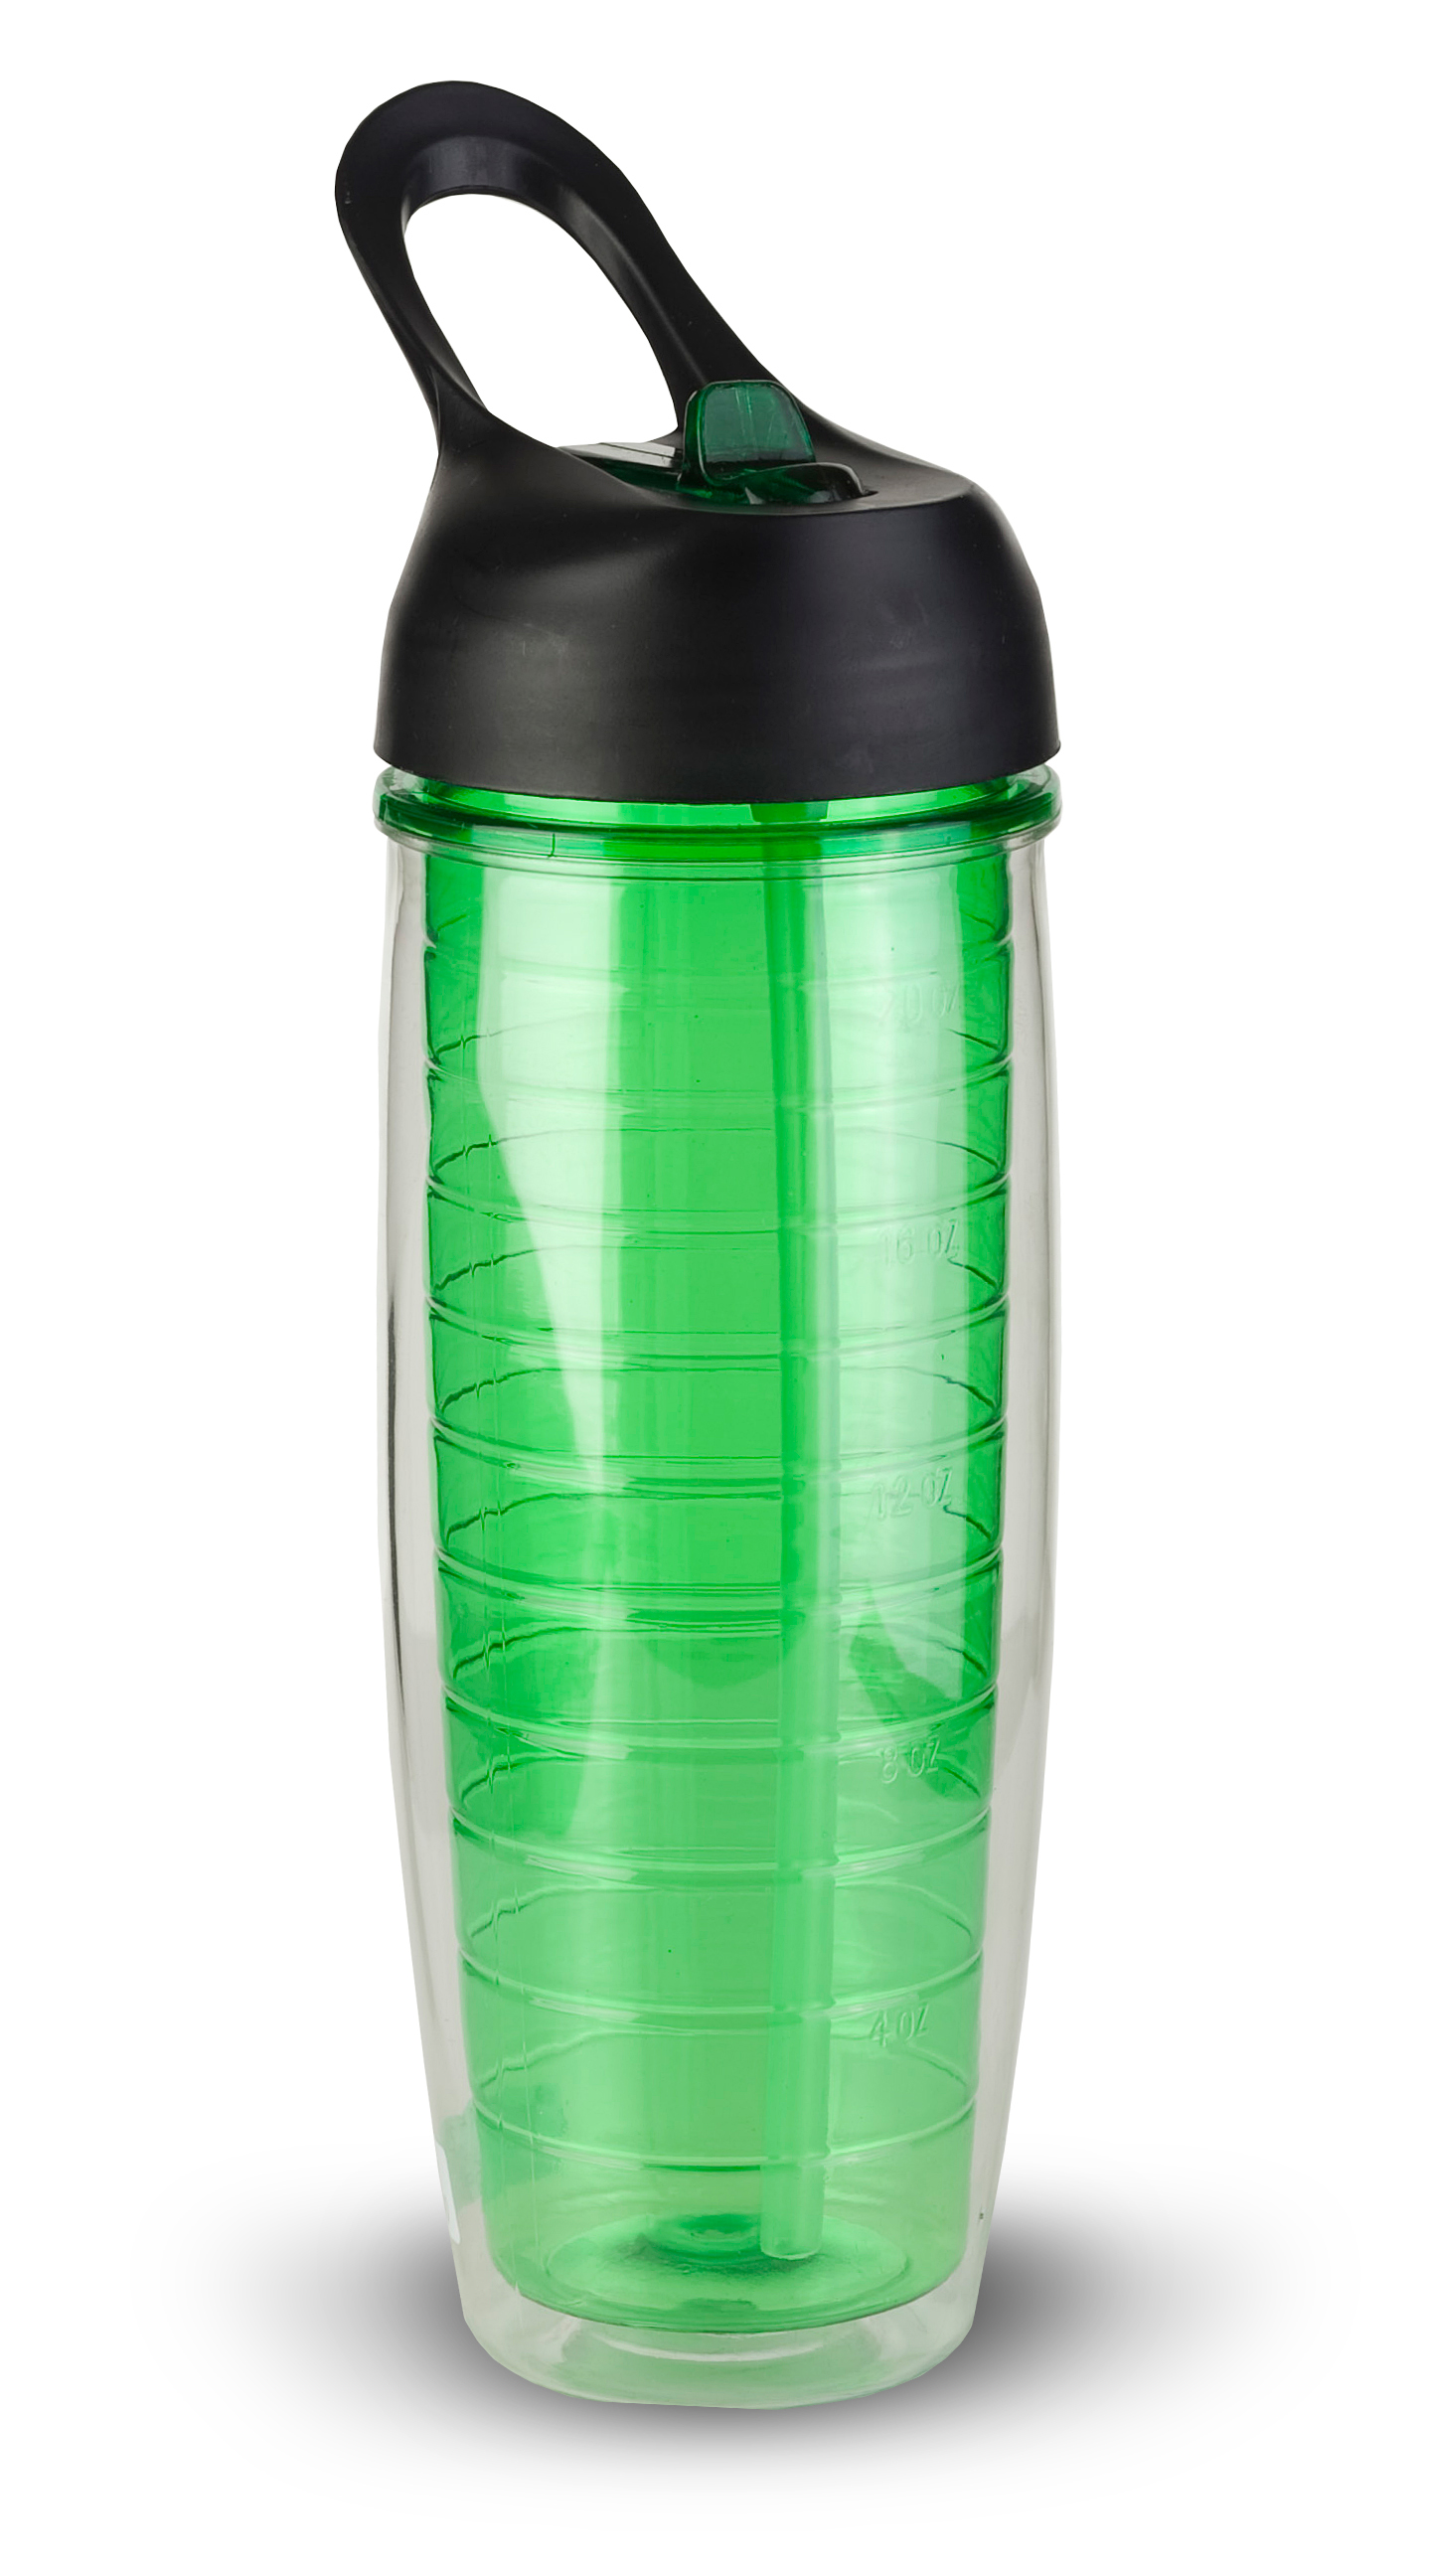 Thirzt 2 Go 20Oz Tritan Double-Walled Insulated Bottle - Green